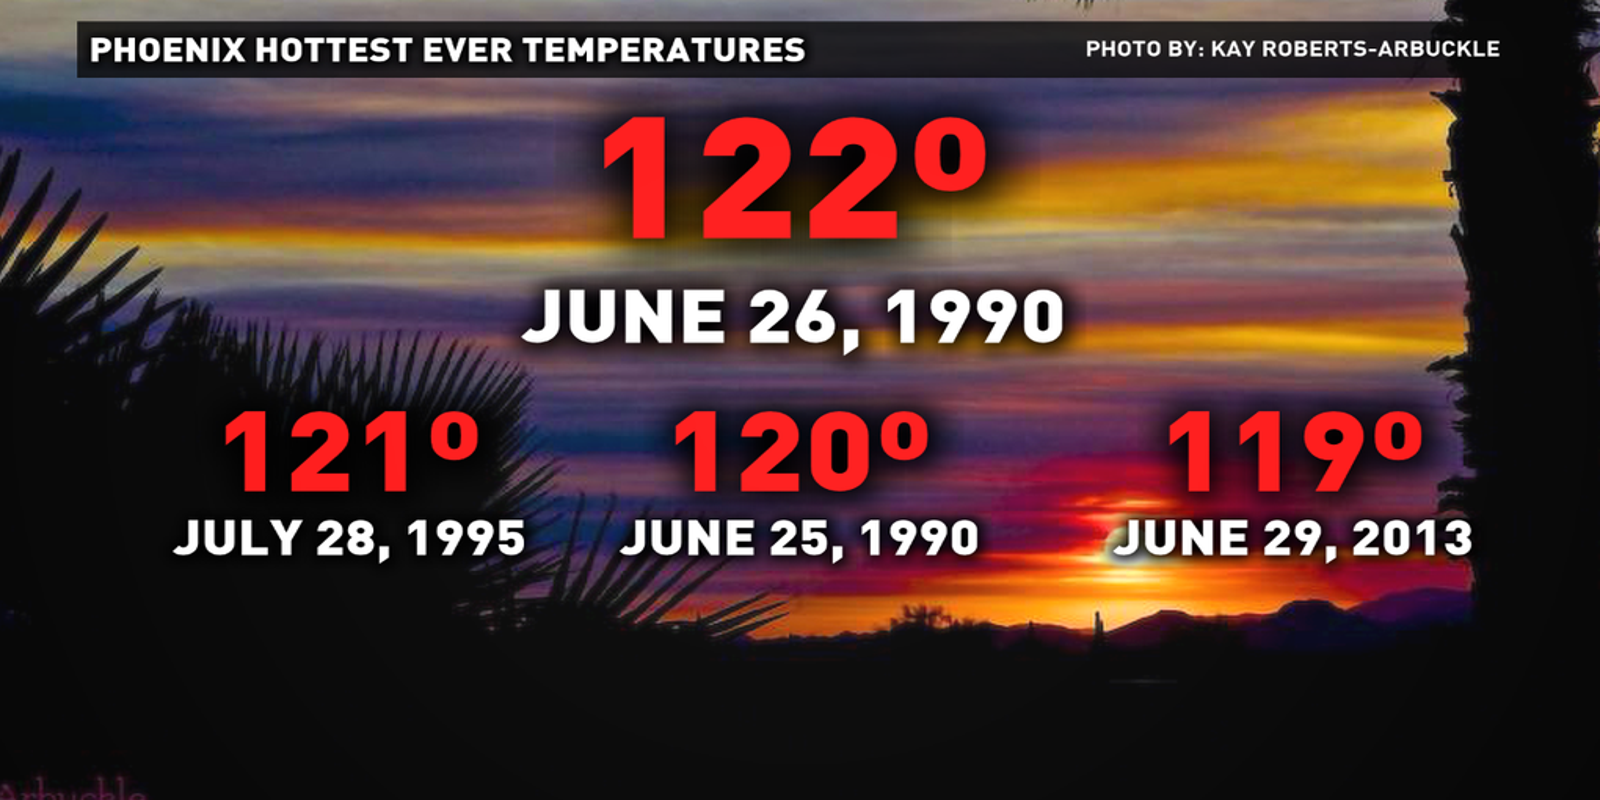 Hottest day in Phoenix history happened 25 years ago